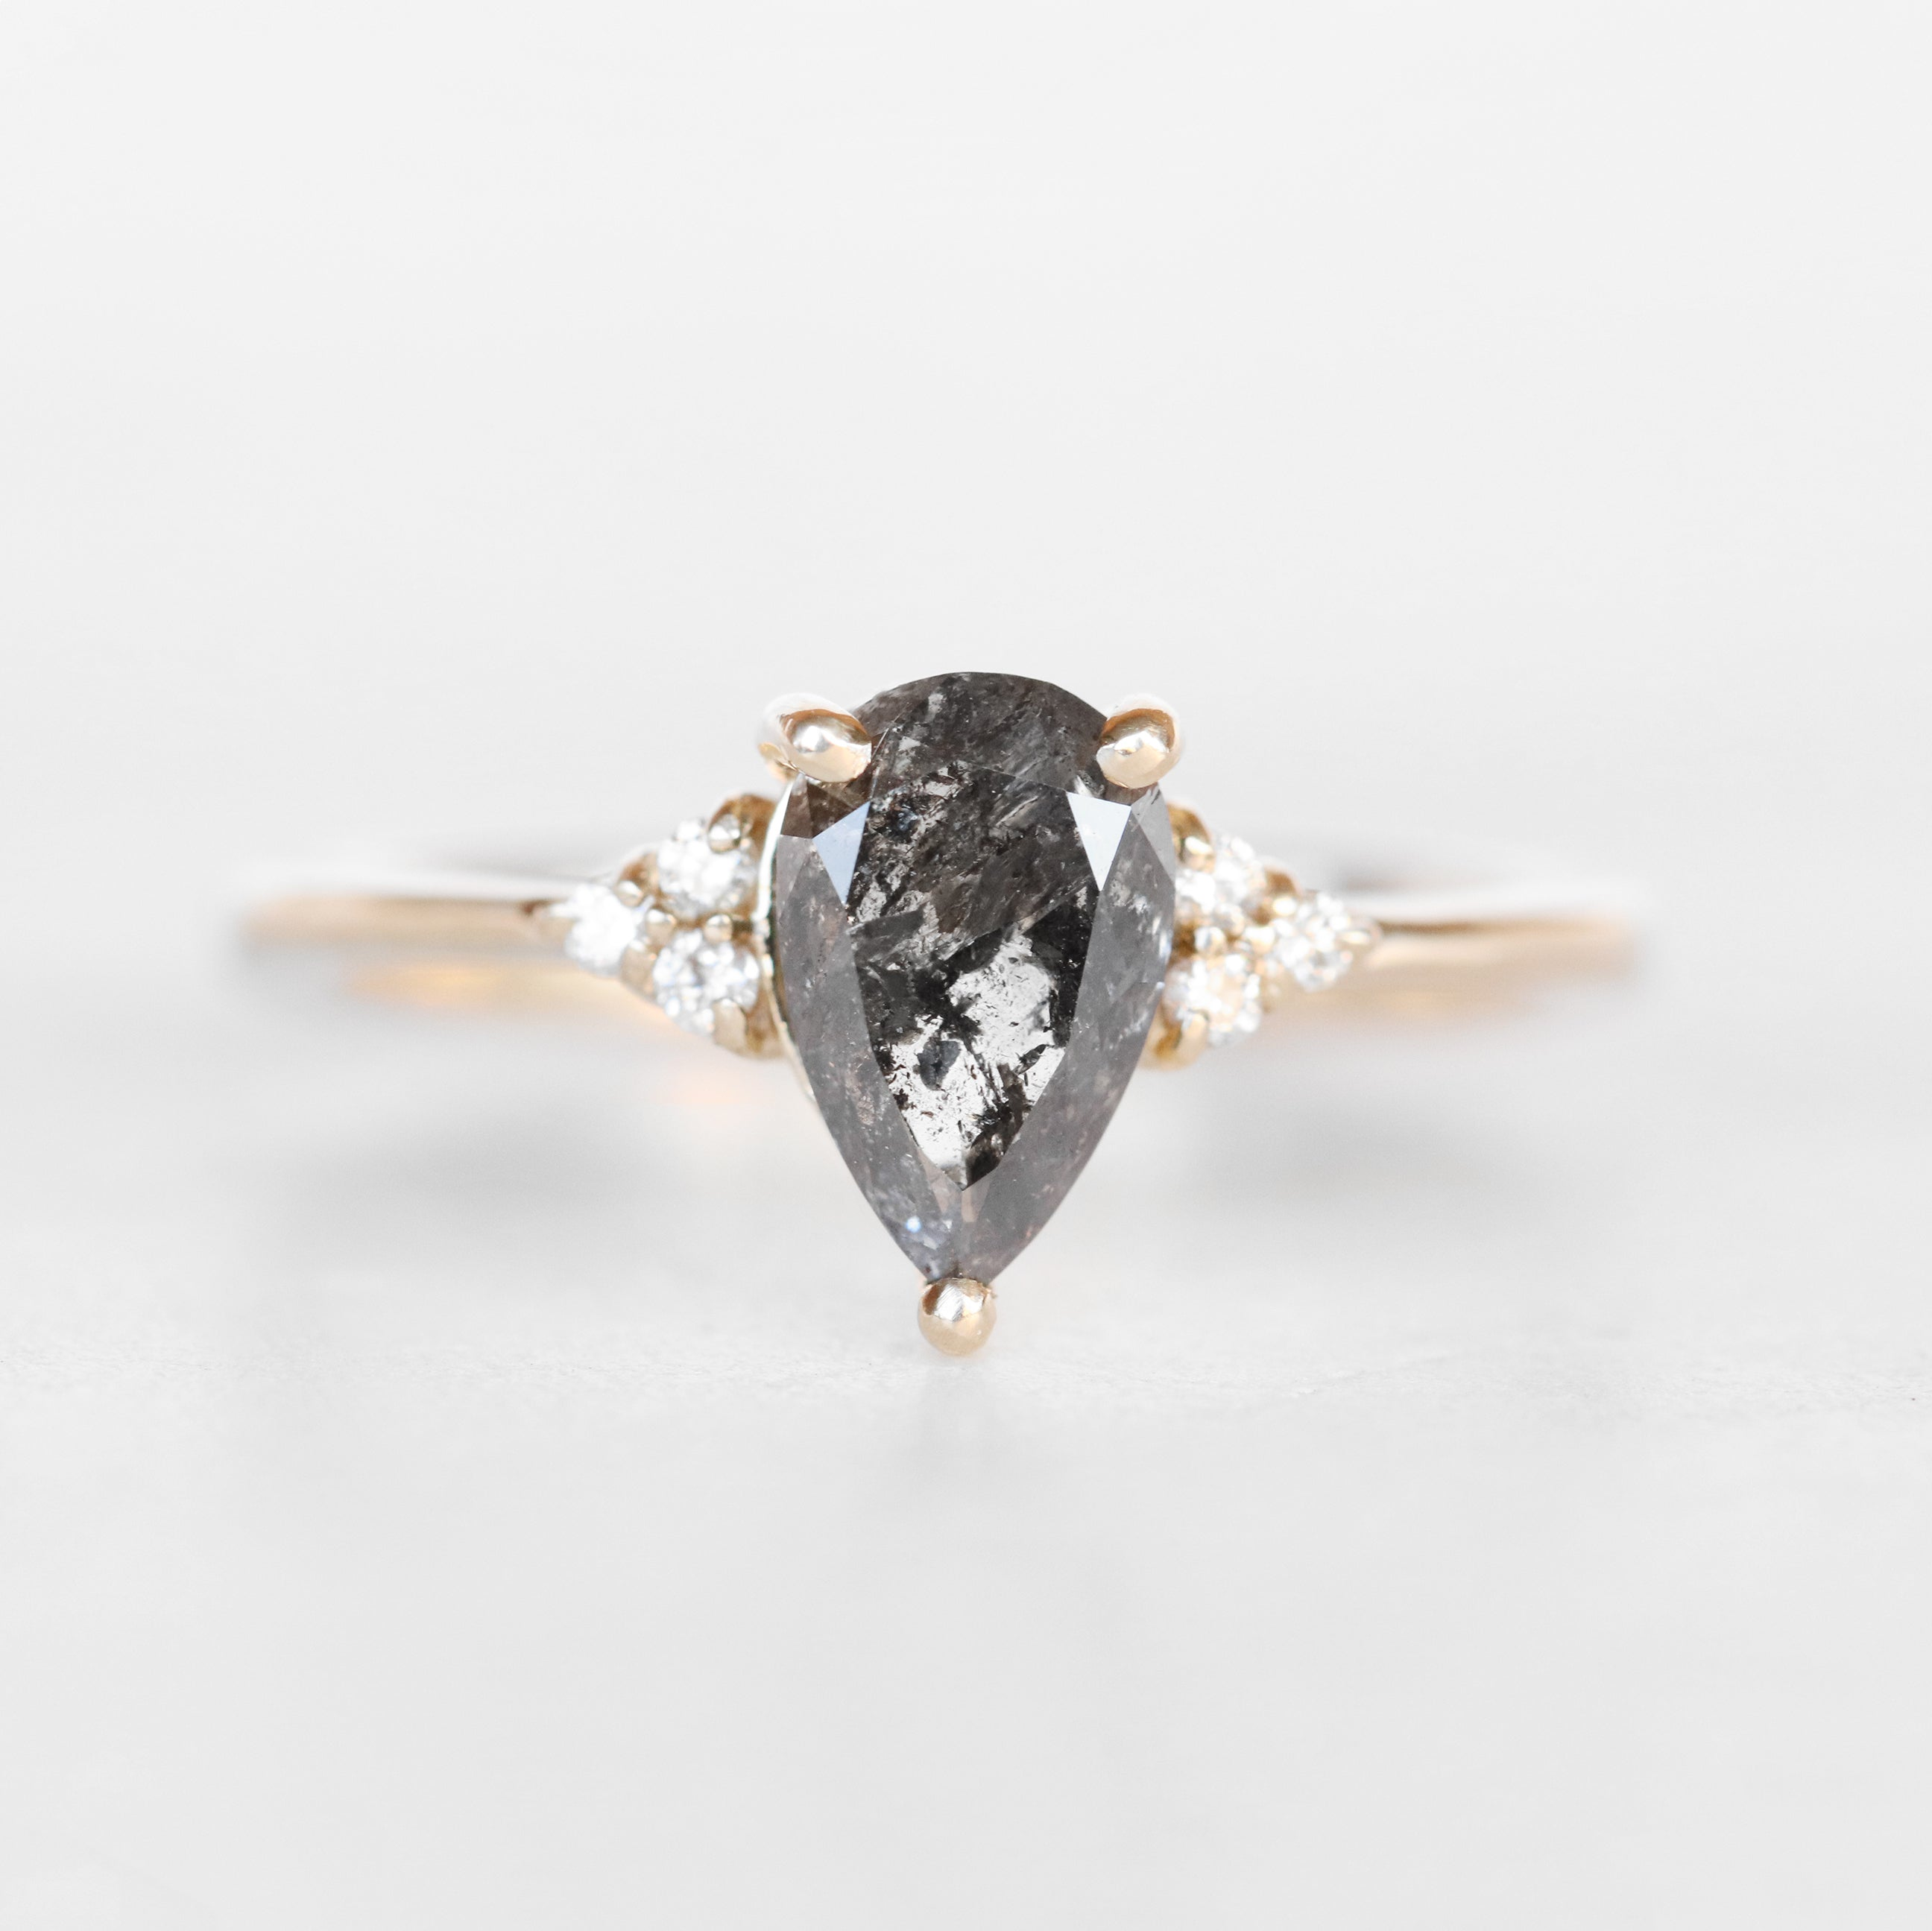 Imogene Ring with a 1.27 Carat Pear Celestial Diamond and Six 1.3mm Accent Stones in 14k Yellow Gold - Ready to Size and Ship - Midwinter Co. Alternative Bridal Rings and Modern Fine Jewelry